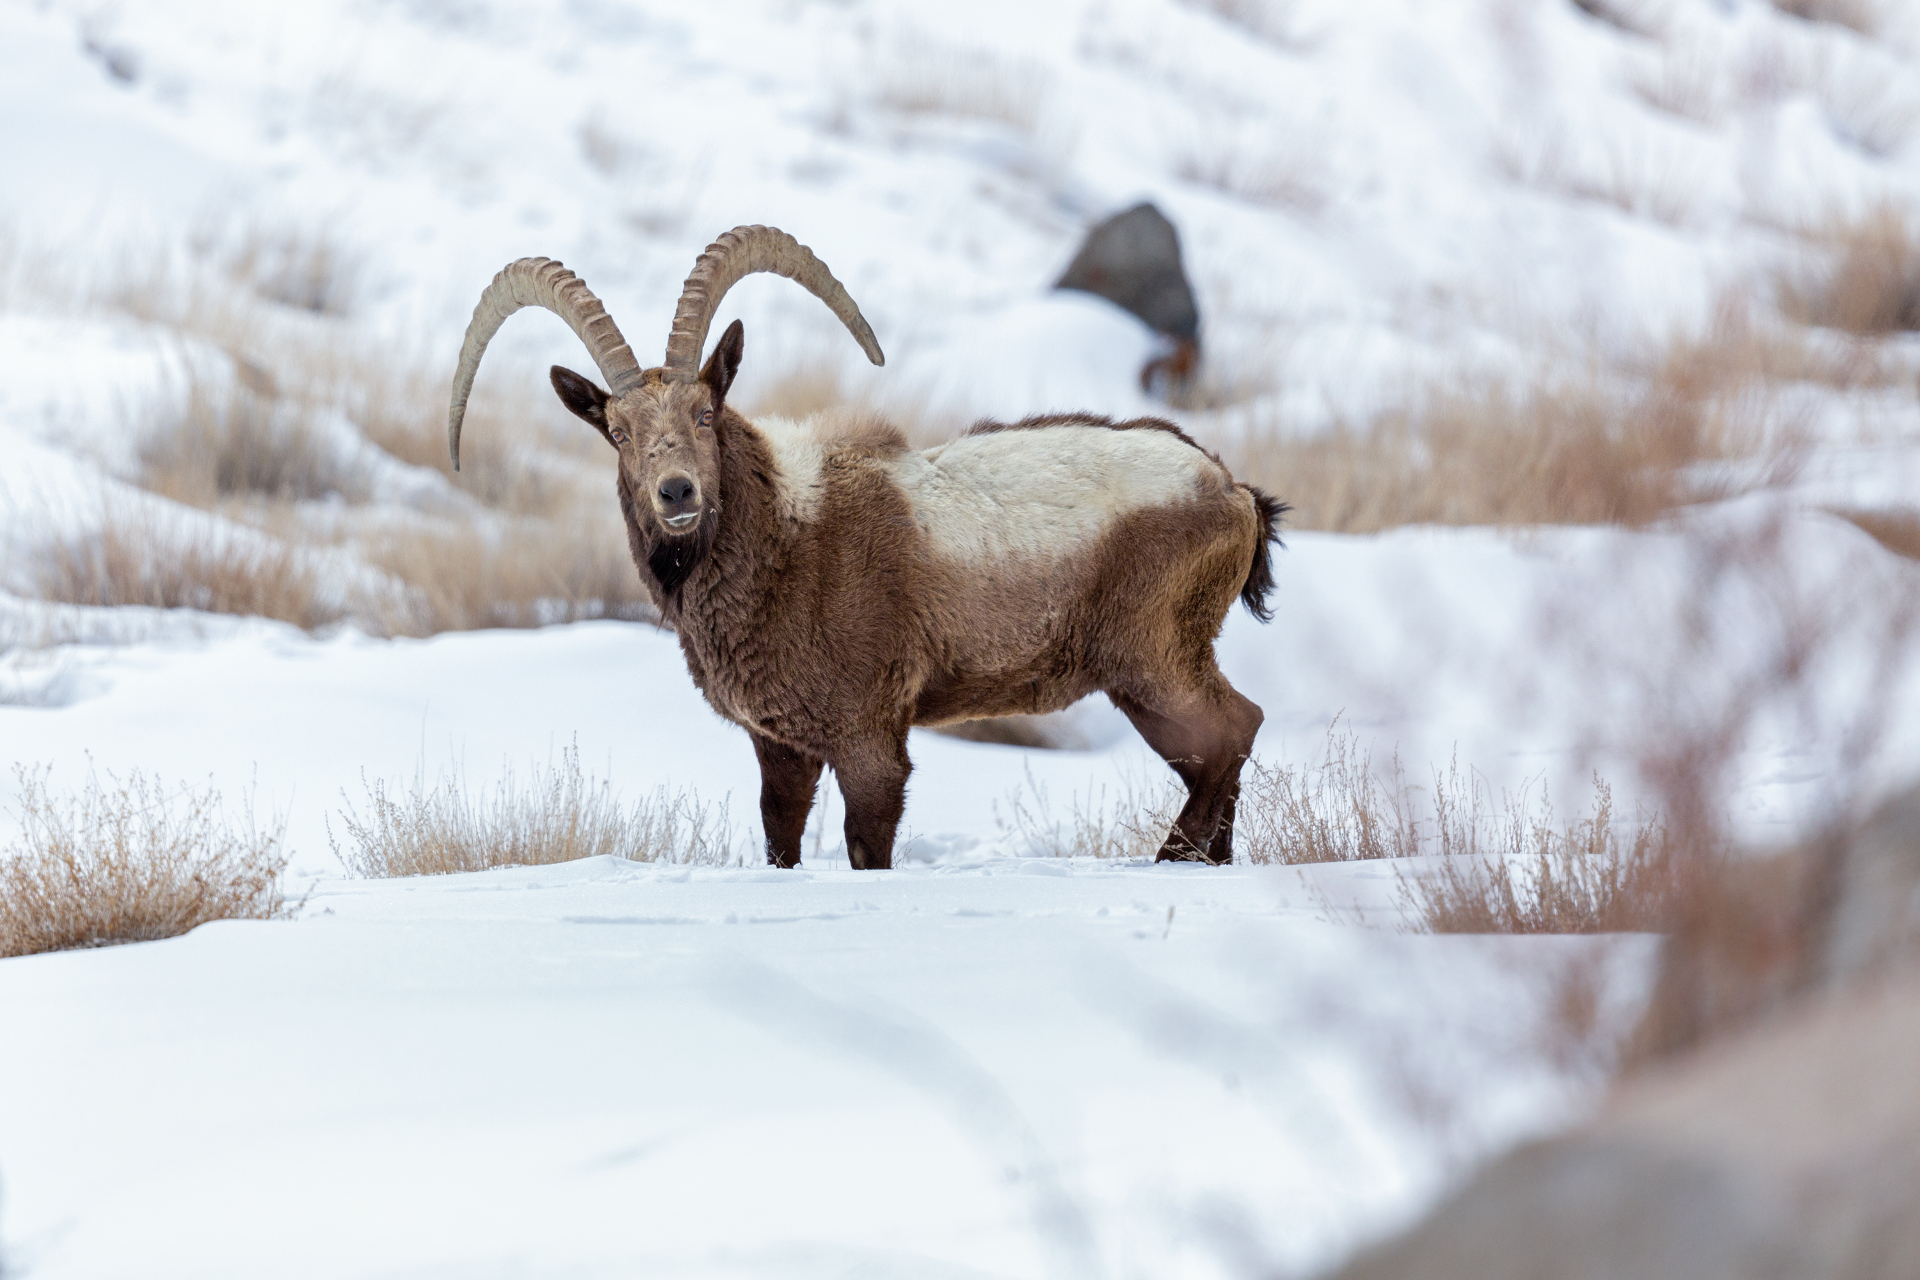 The Pin Valley is the ideal habitat for wild goats such as this large male Asiatic ibex. The ibex and their domestic cousins have a similar diet, leading to competition for resources. Photo: Arindham Bhattacharya  A herd of livestock crosses a treacherous pass between the Bhaba Valley in Lower Kinnaur and the Pin Valley in Spiti, both in Himachal Pradesh. Herds undertake these migrations to exploit the ephemeral summer blooms of the high Himalayas. Cover Photo: Munib Khanyari